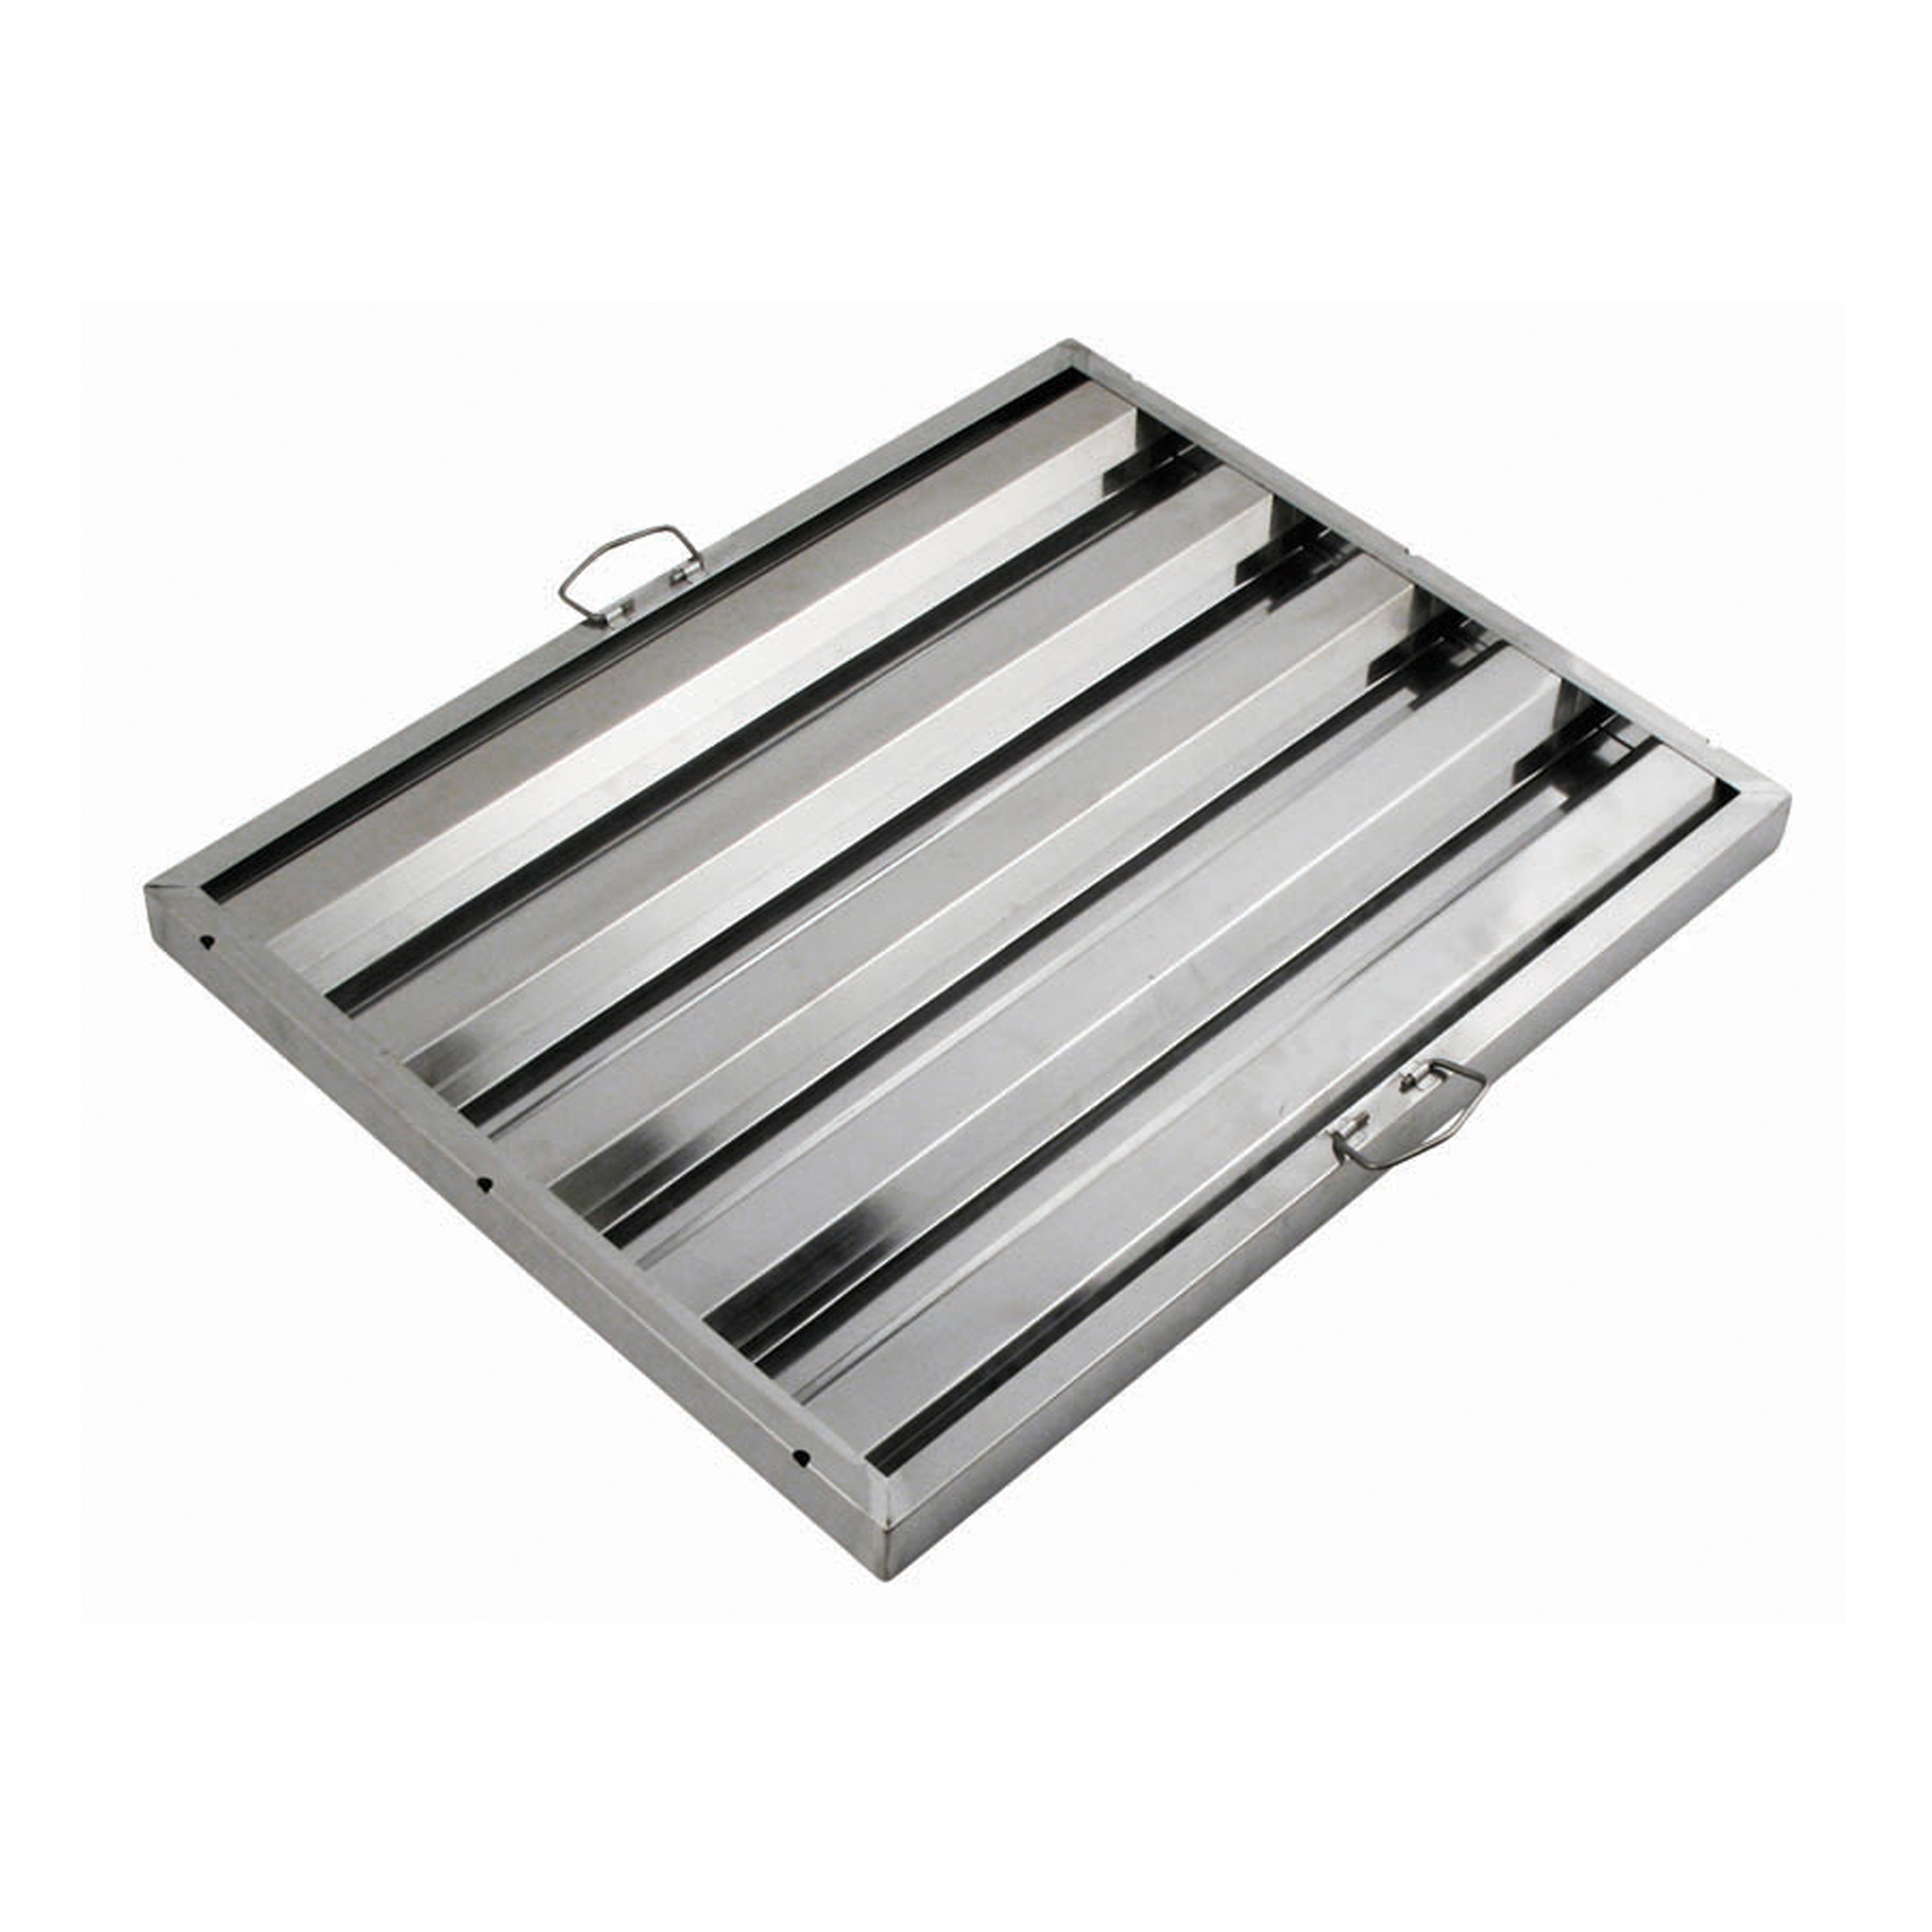 Winco HFS-2520 exhaust hood filter